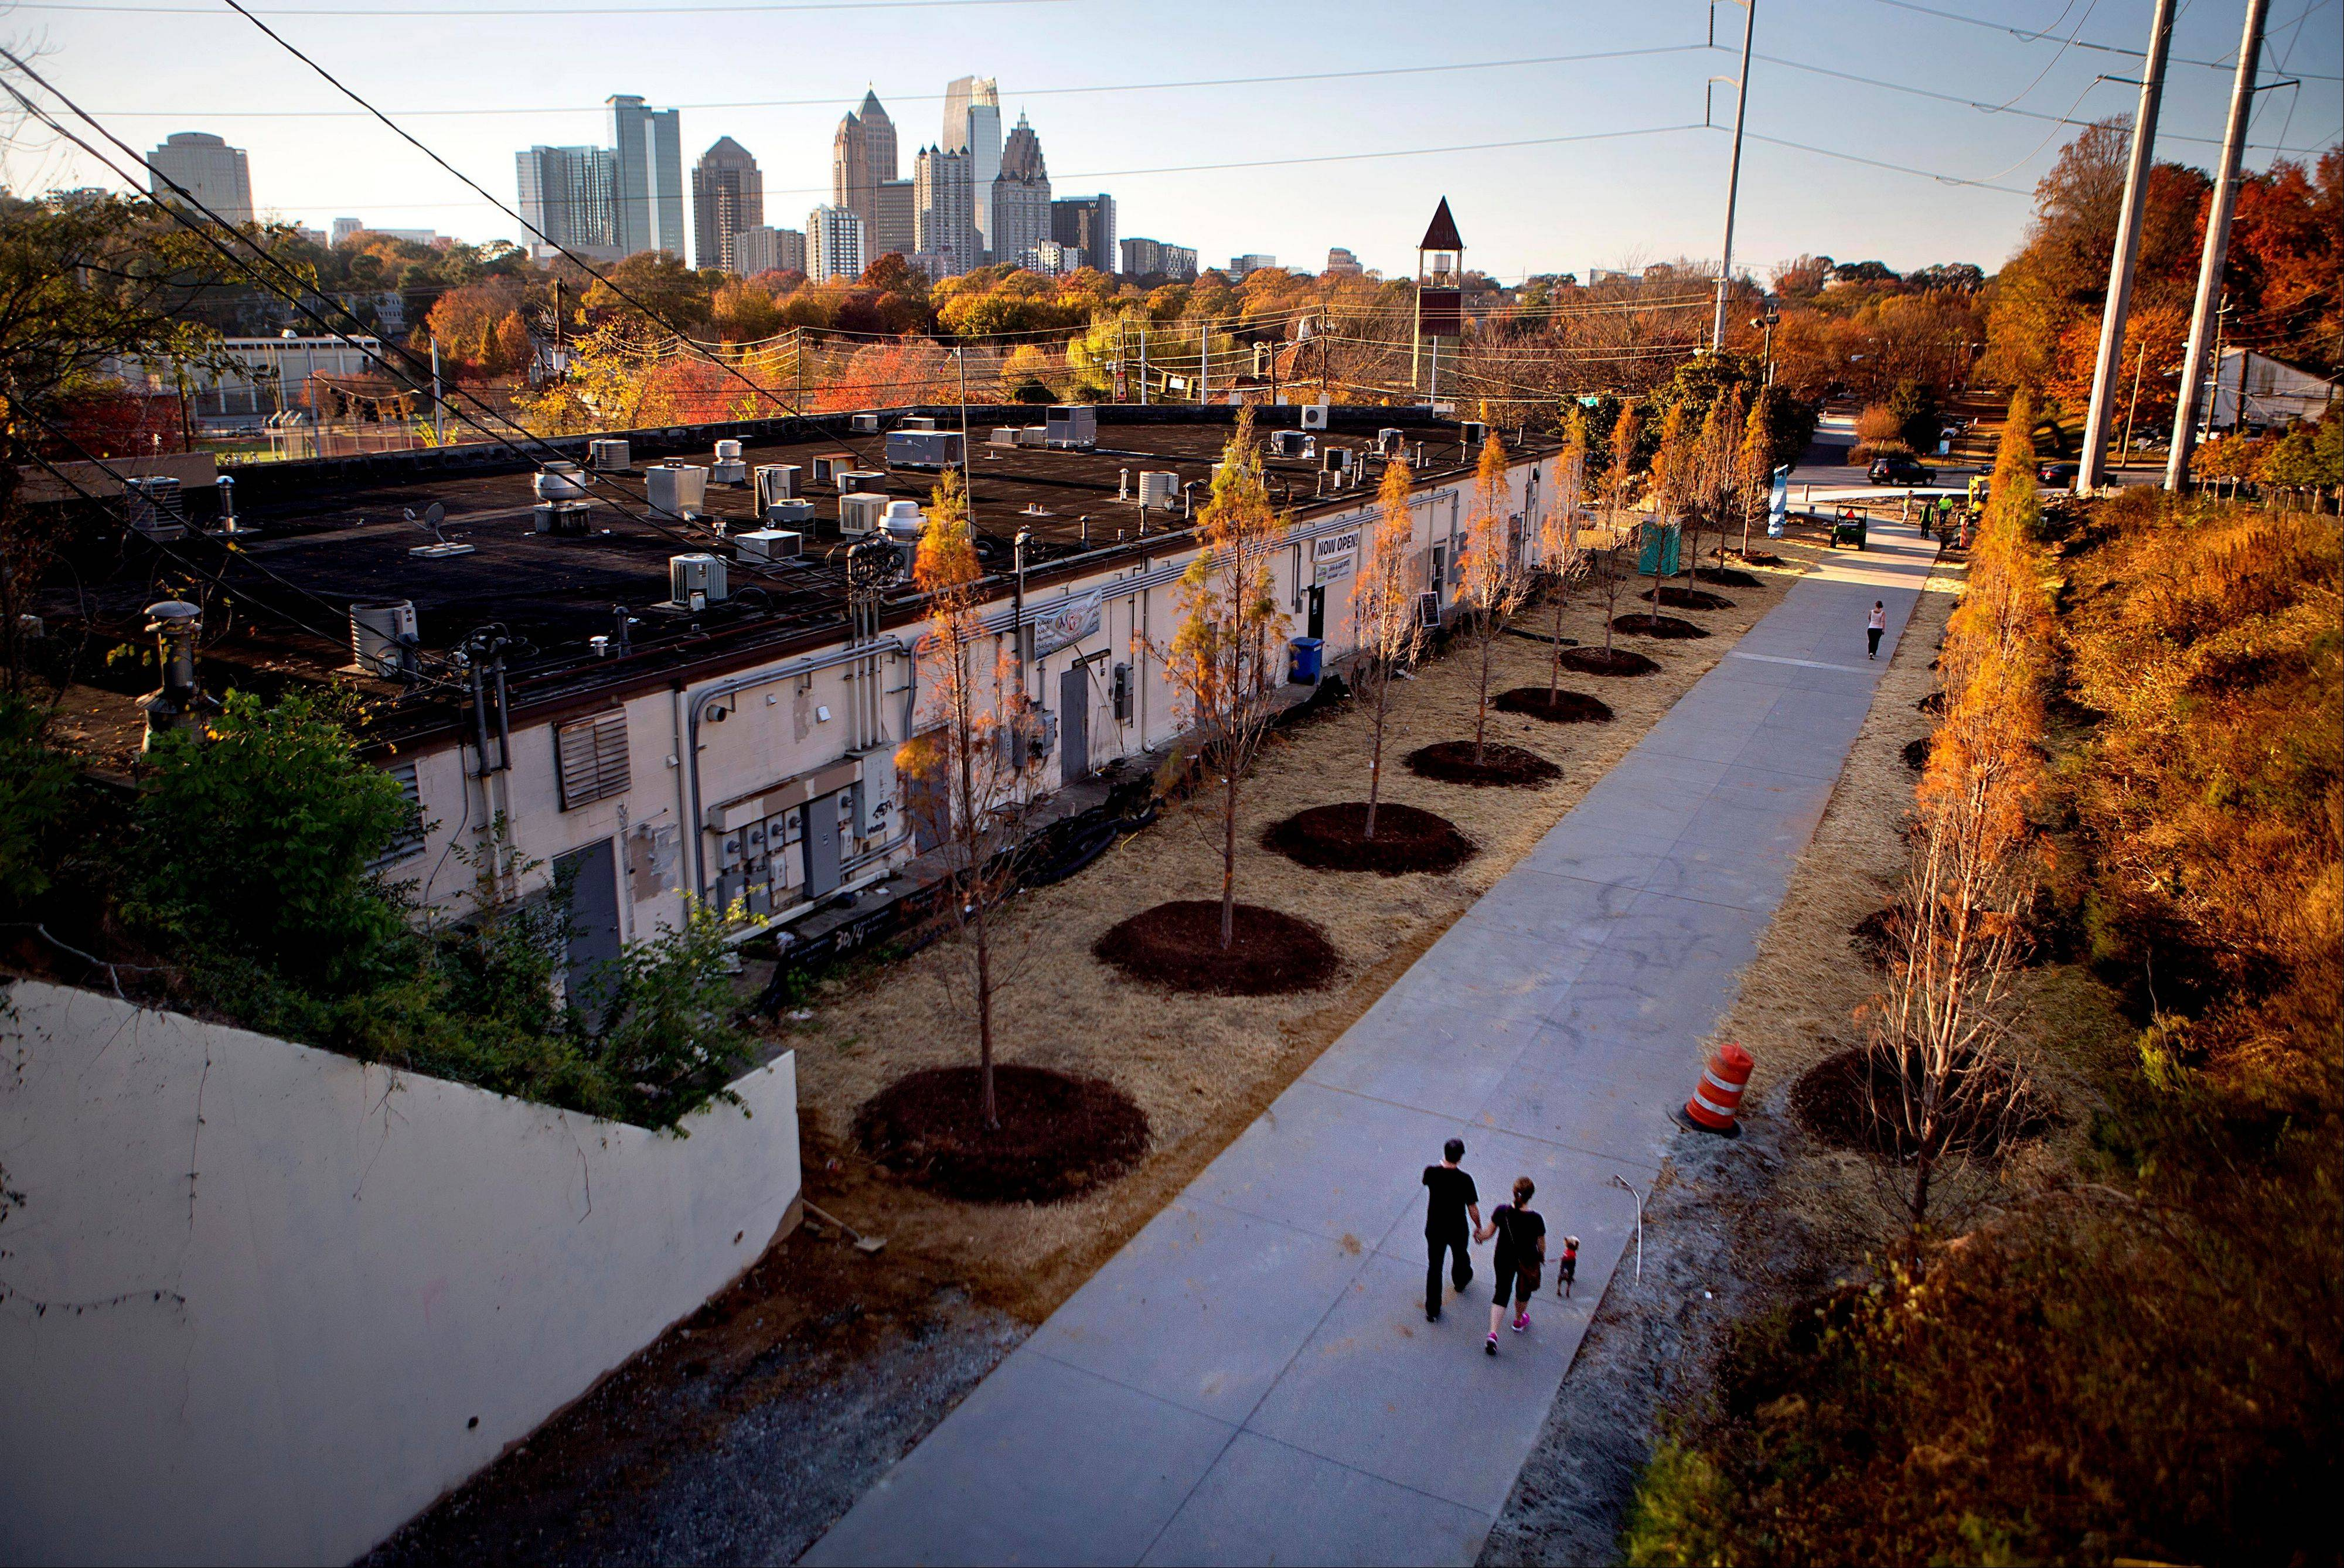 A couple walks along the Atlanta BeltLine as the midtown skyline stands in the background in Atlanta. The Atlanta BeltLine is an urban redevelopment project that aims to turn an old 22-mile railroad corridor that rings the city's in-town neighborhoods into a network of trails, parks, affordable housing and, eventually, transit.